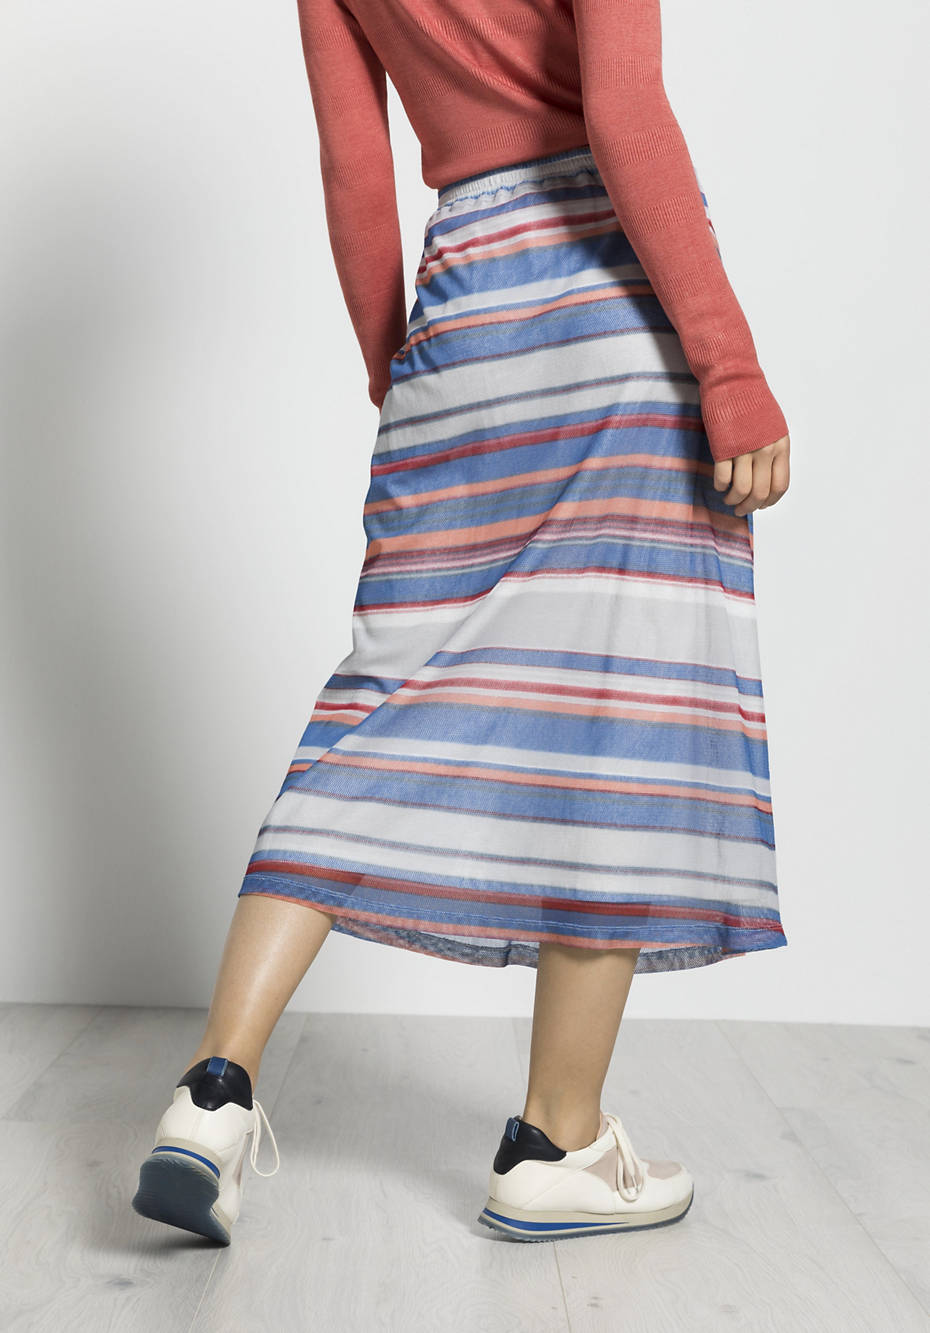 Tulle skirt made of pure organic cotton